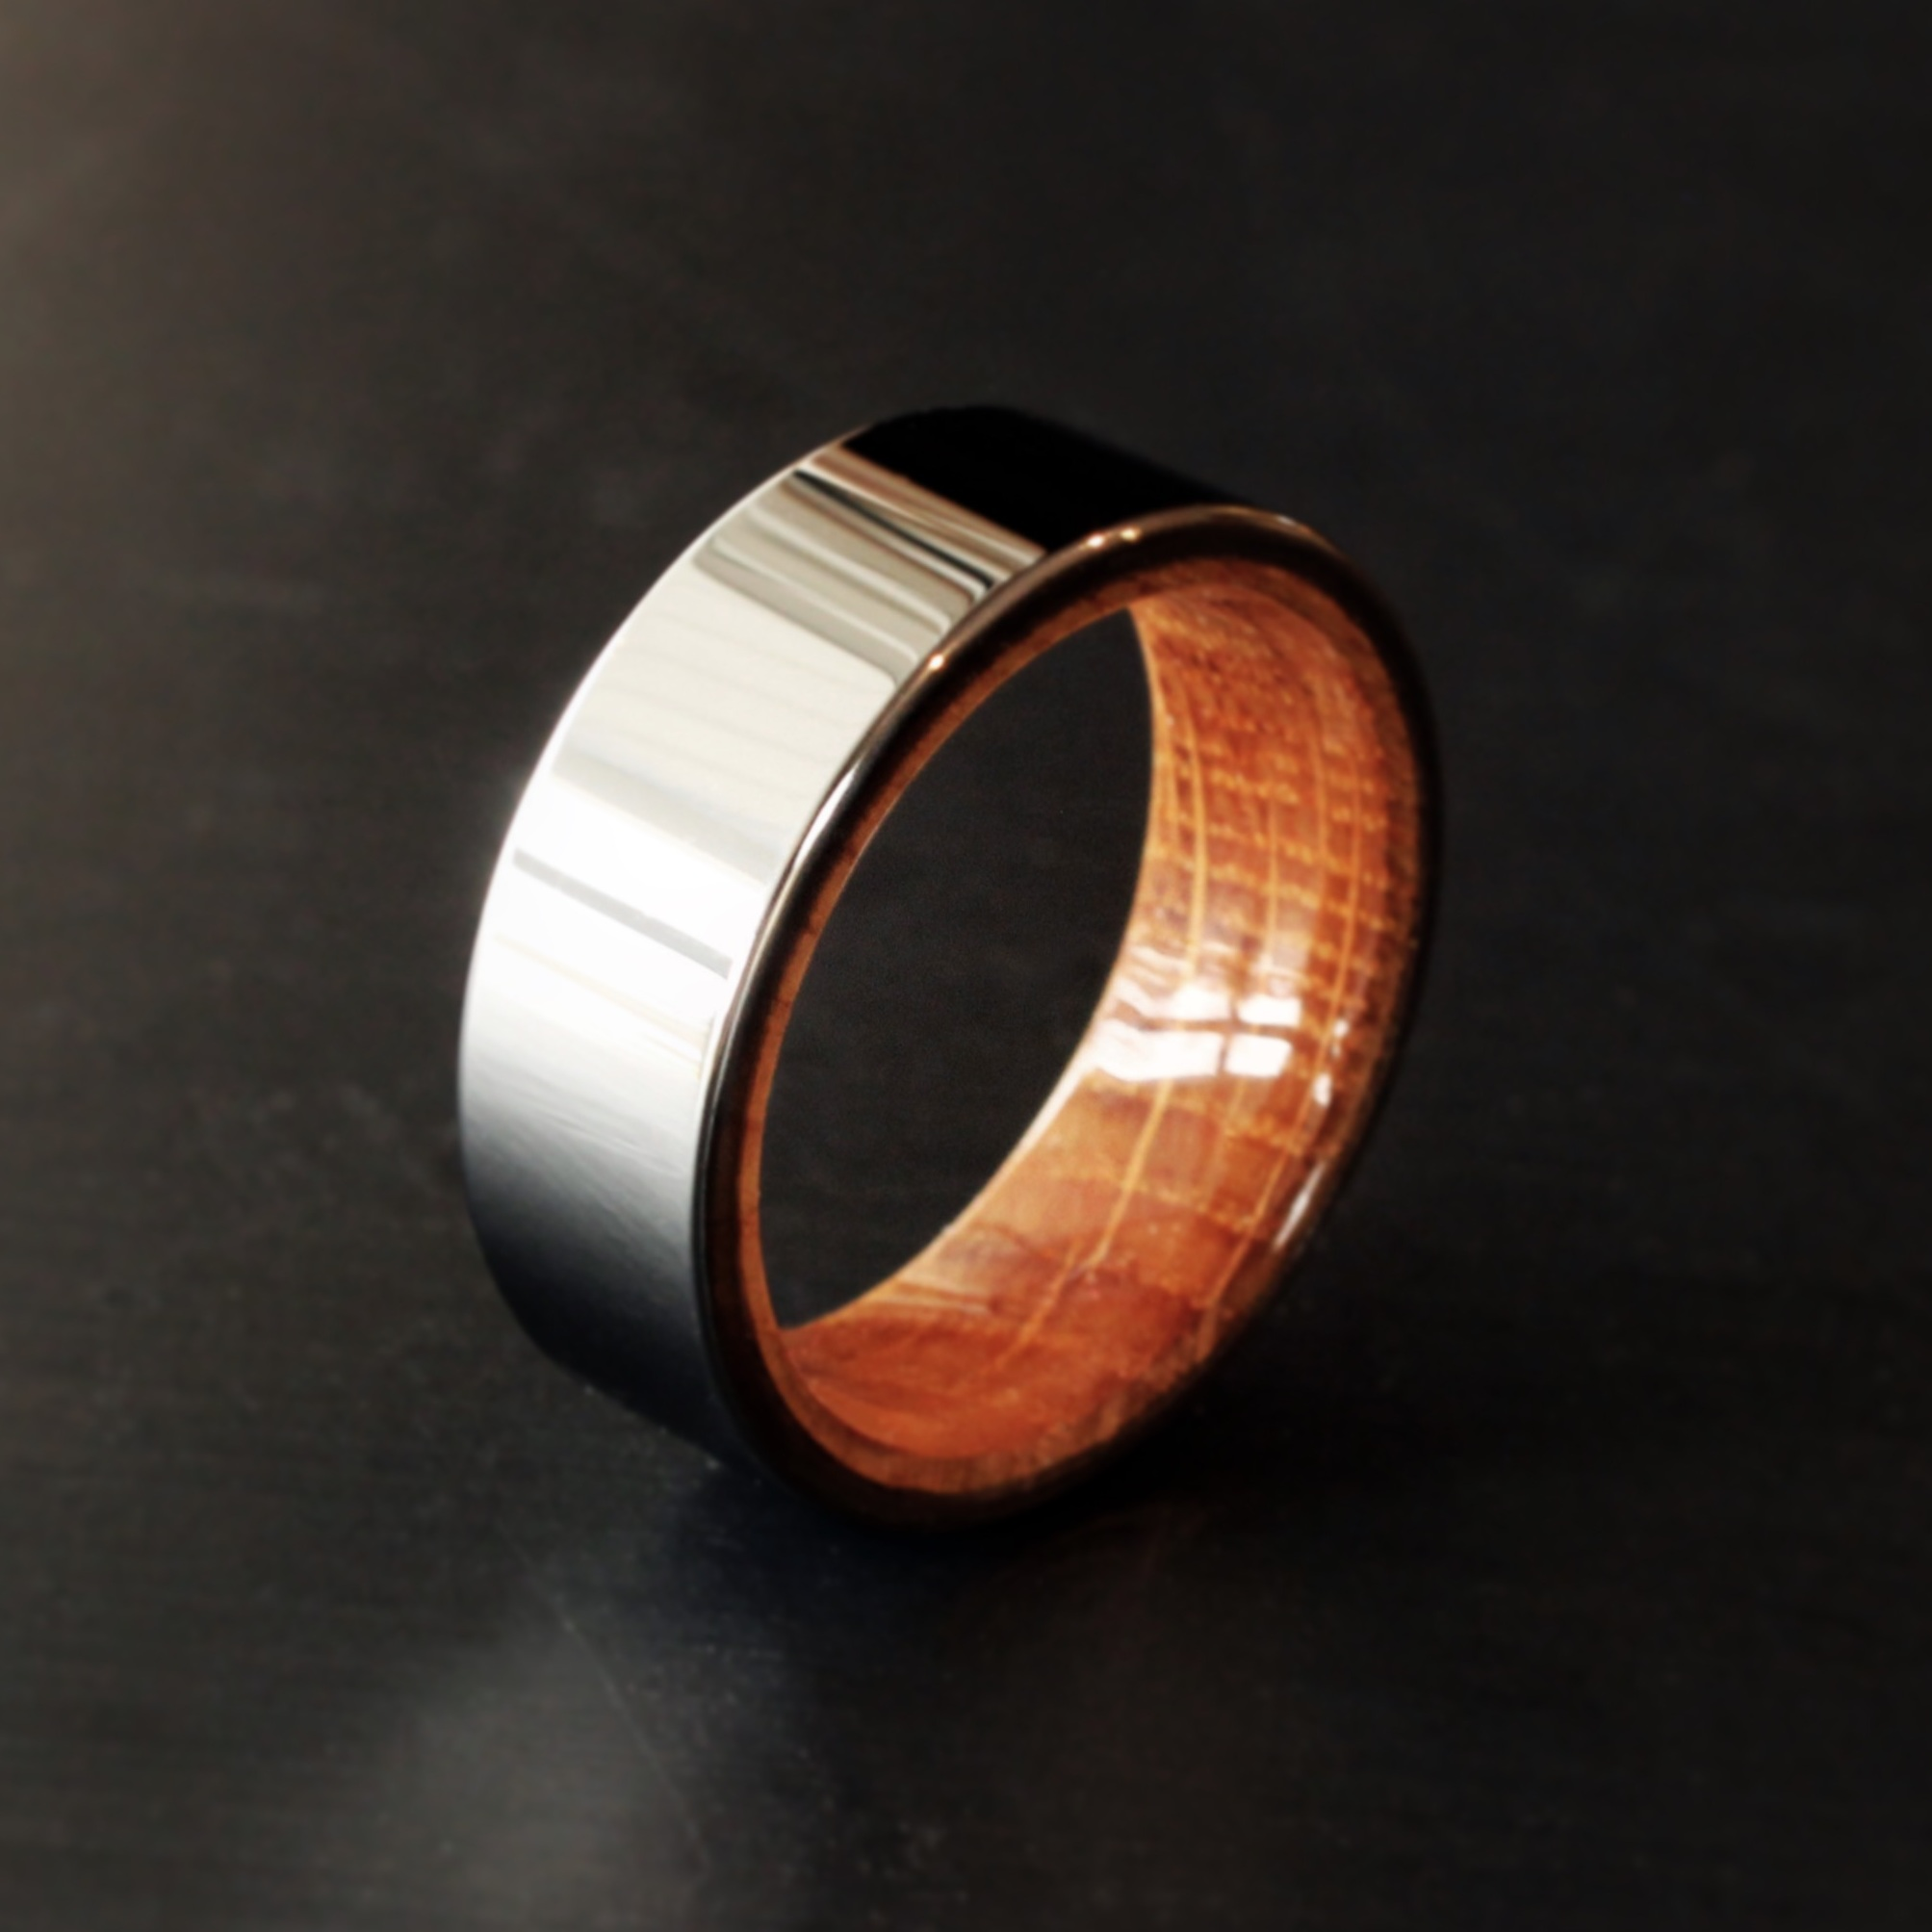 tungsten-carbide-wood-ring-whiskey-barrel-wedgewood.jpg